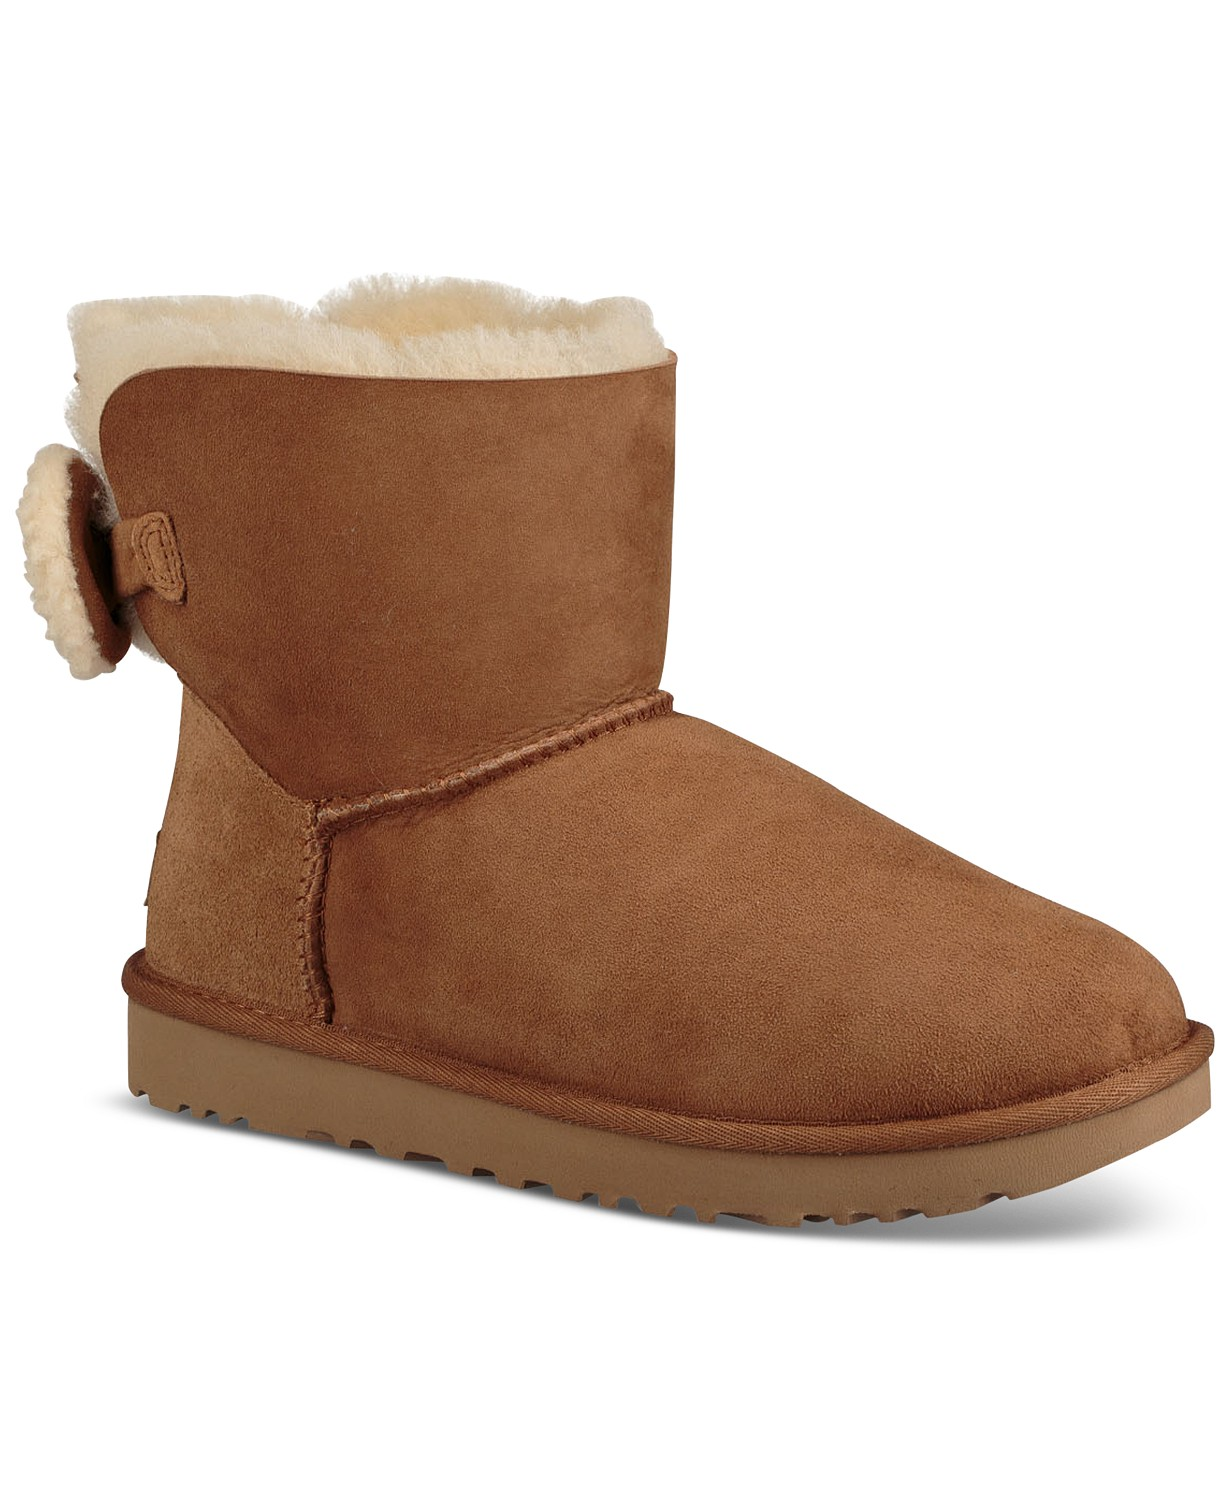 (25% OFF Deal) UGG Arielle Booties $127.50